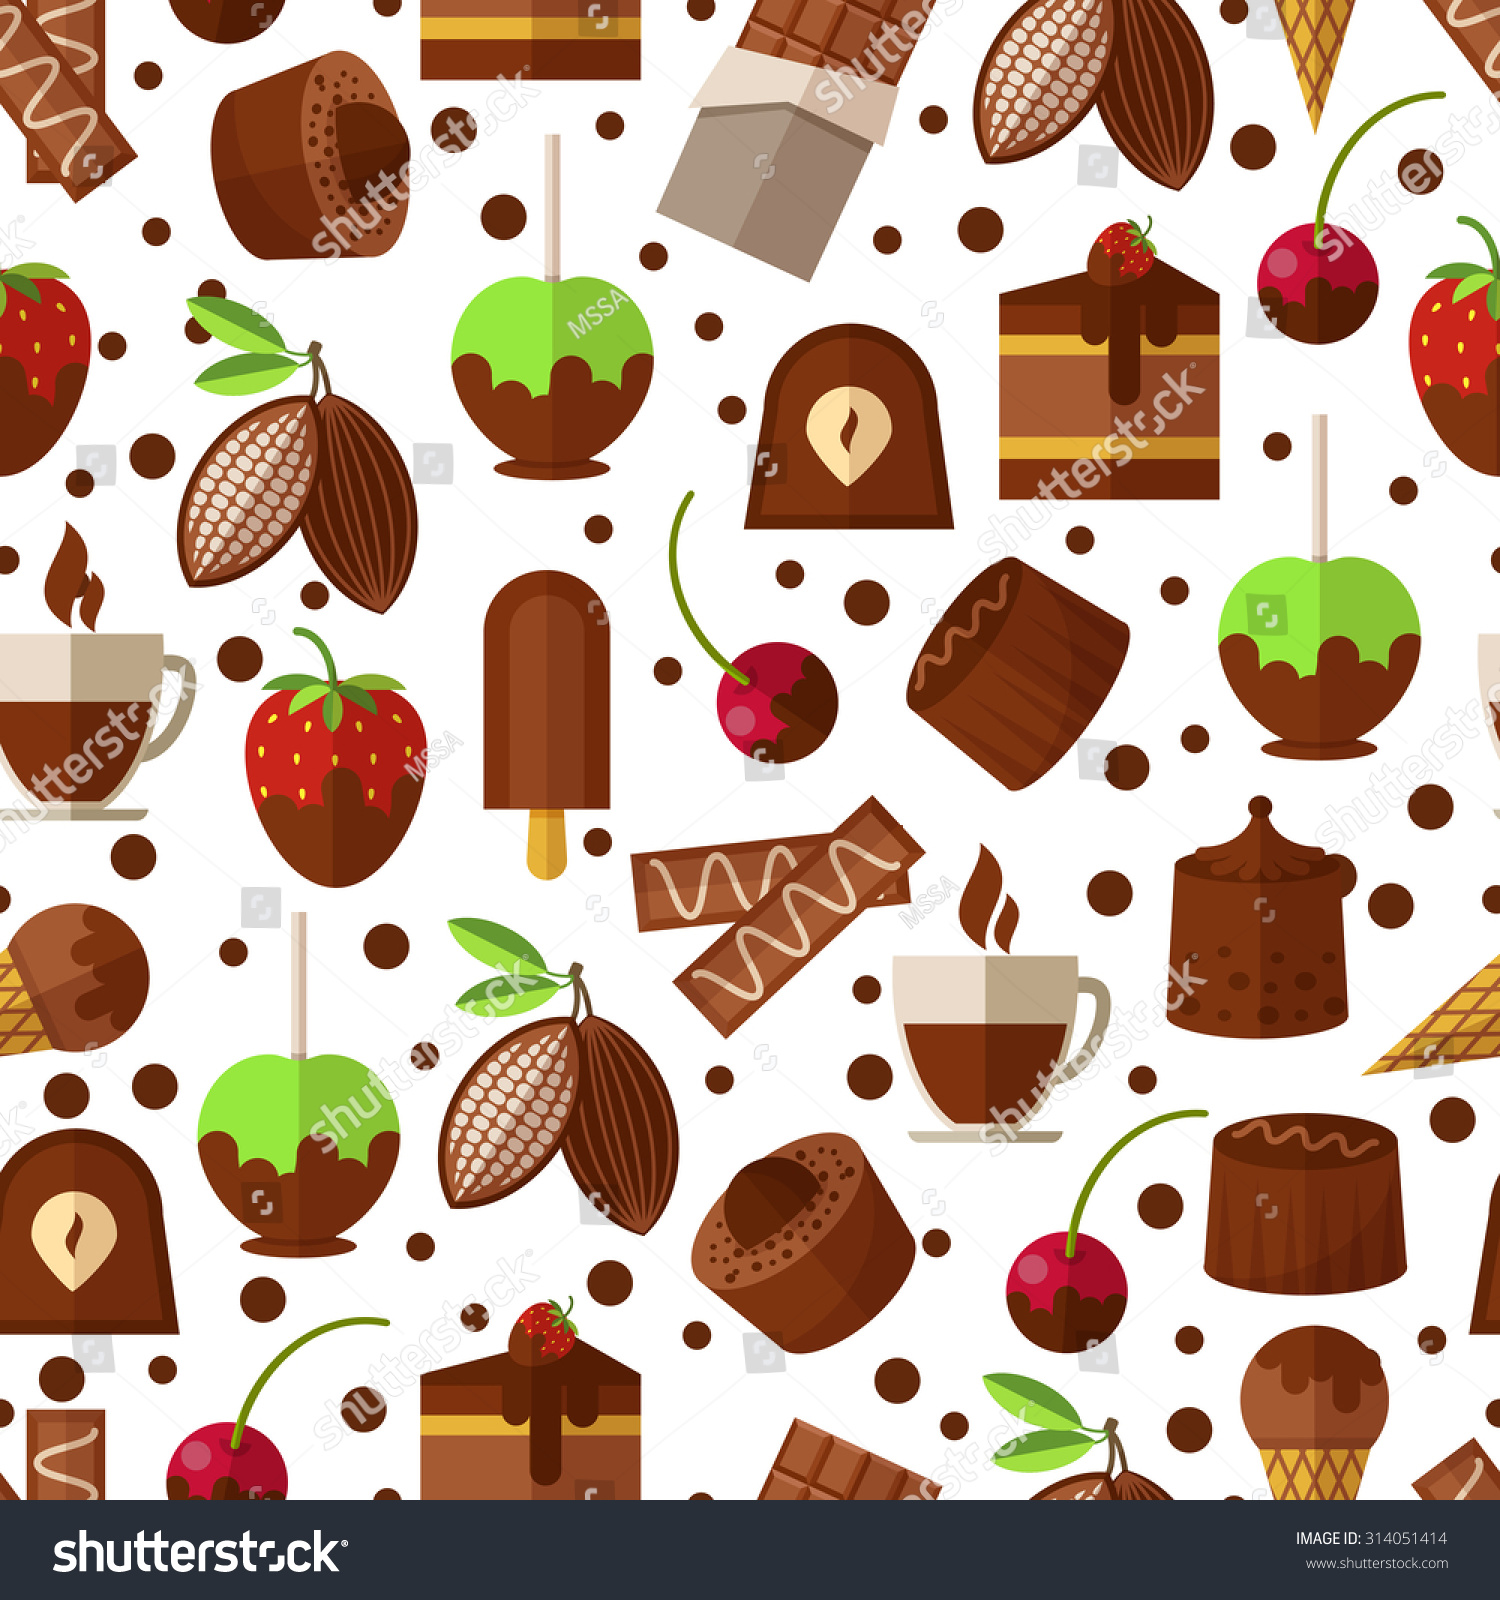 Sweet Ice Cream Flat Colorful Seamless Pattern Vector: Sweets Candies Chocolate Ice Cream Seamless Stock Vector